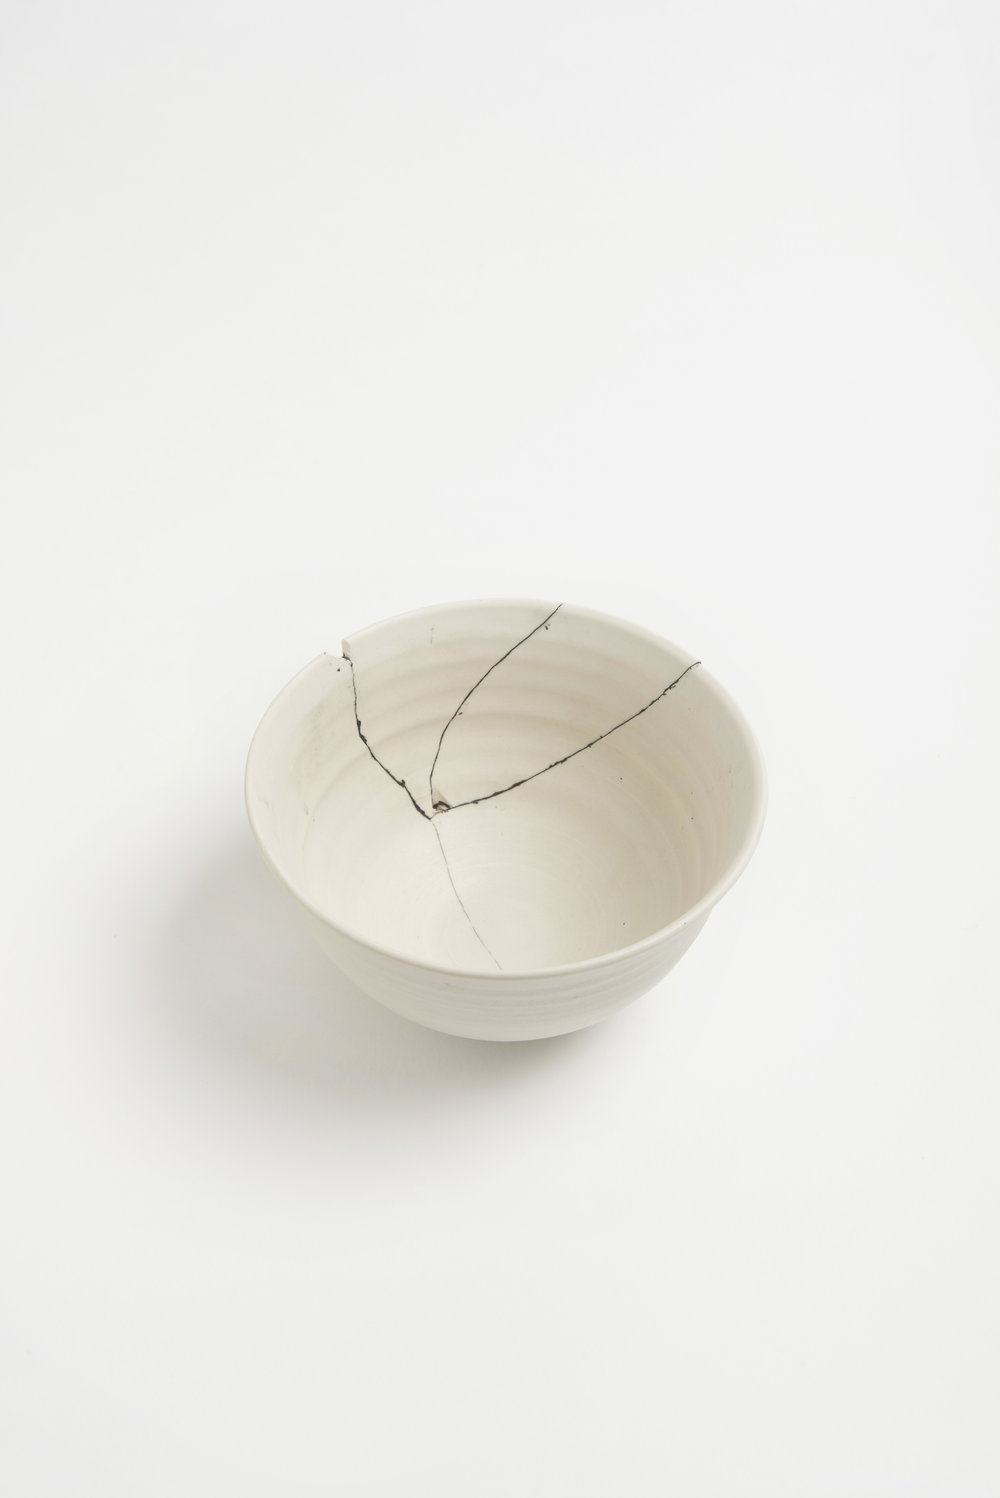 white-fracture-series-bowl-romy-northover-ceramics-the-garnered-12.jpg